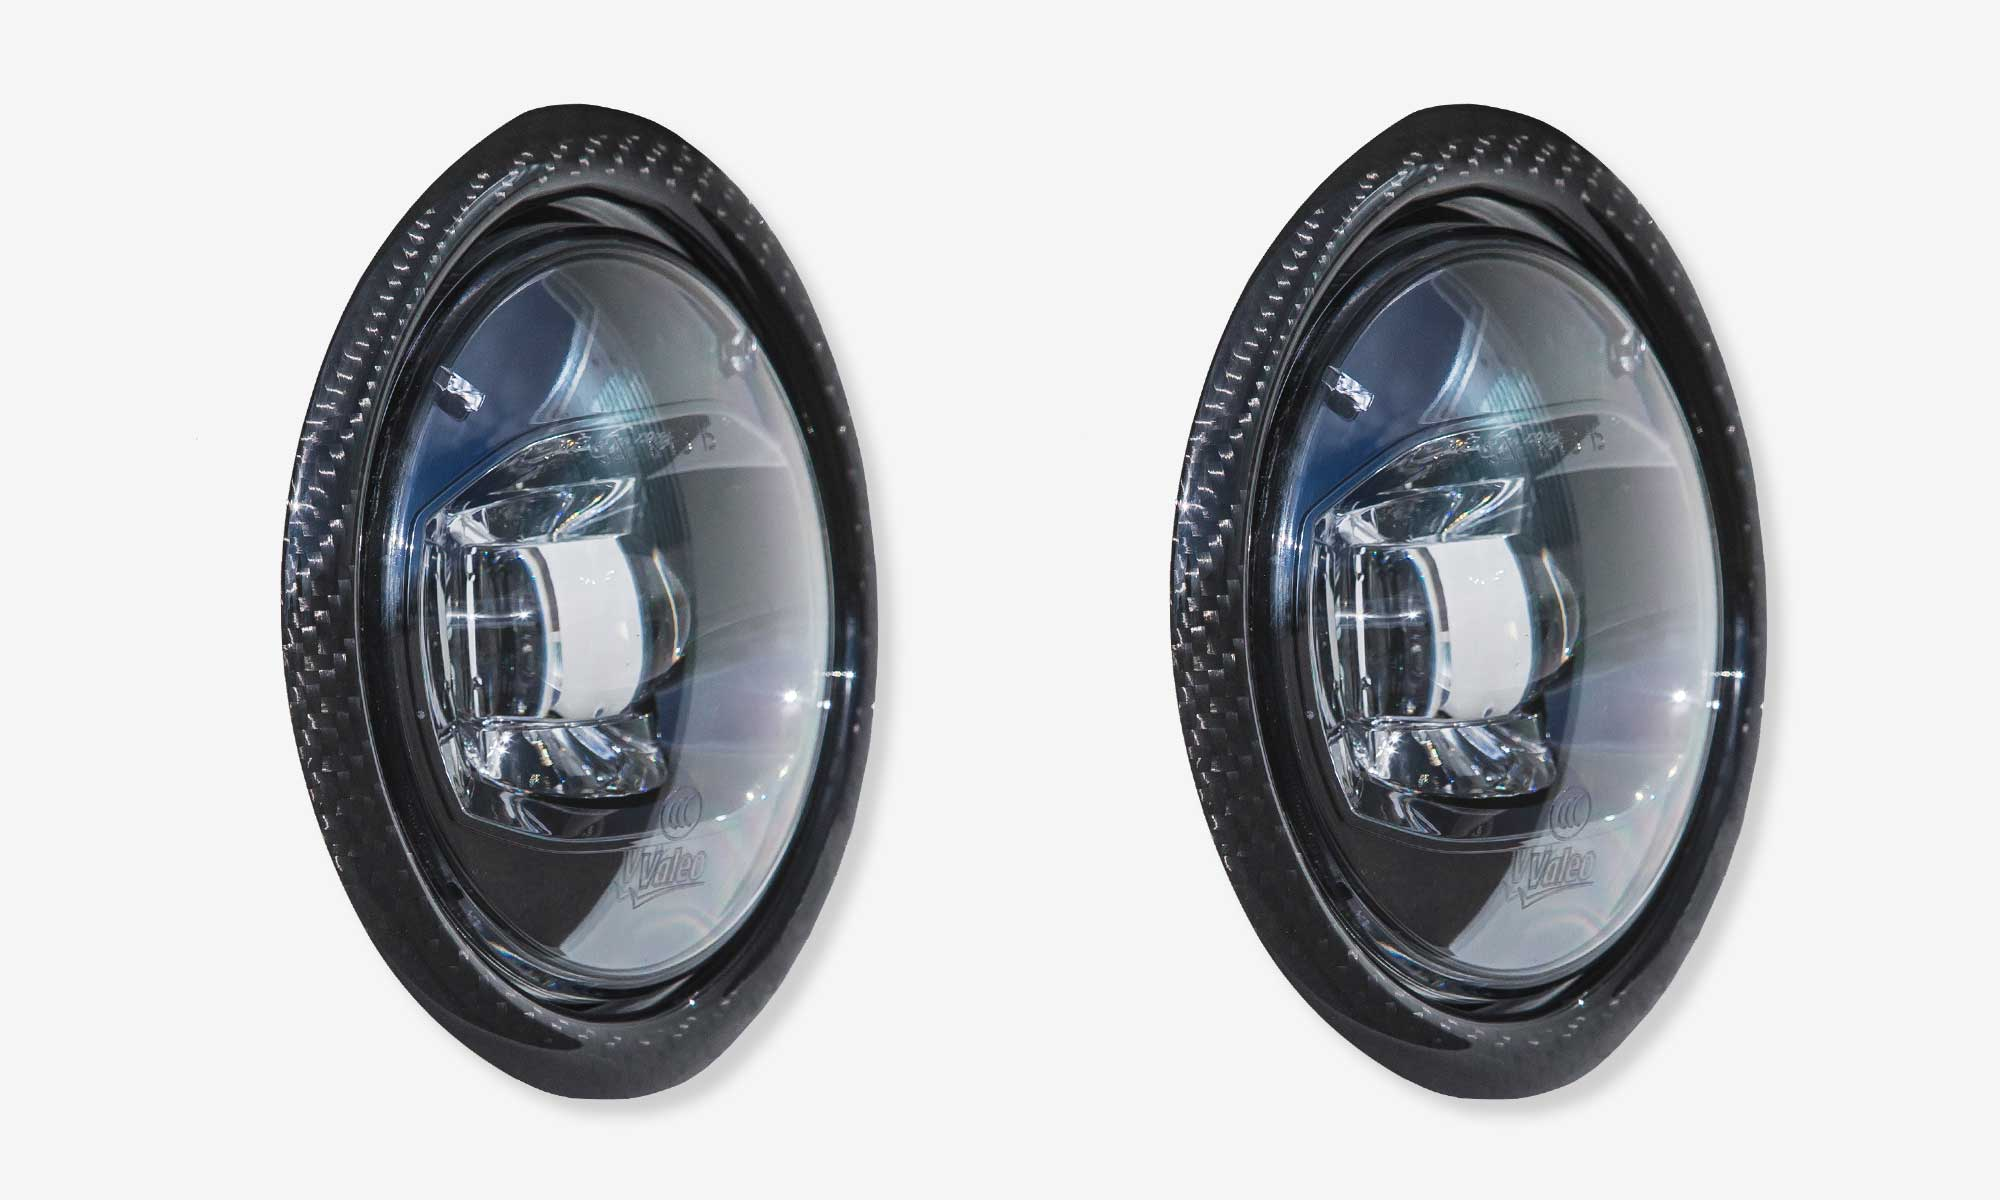 Fog lights rings for Maserati Levante EVO